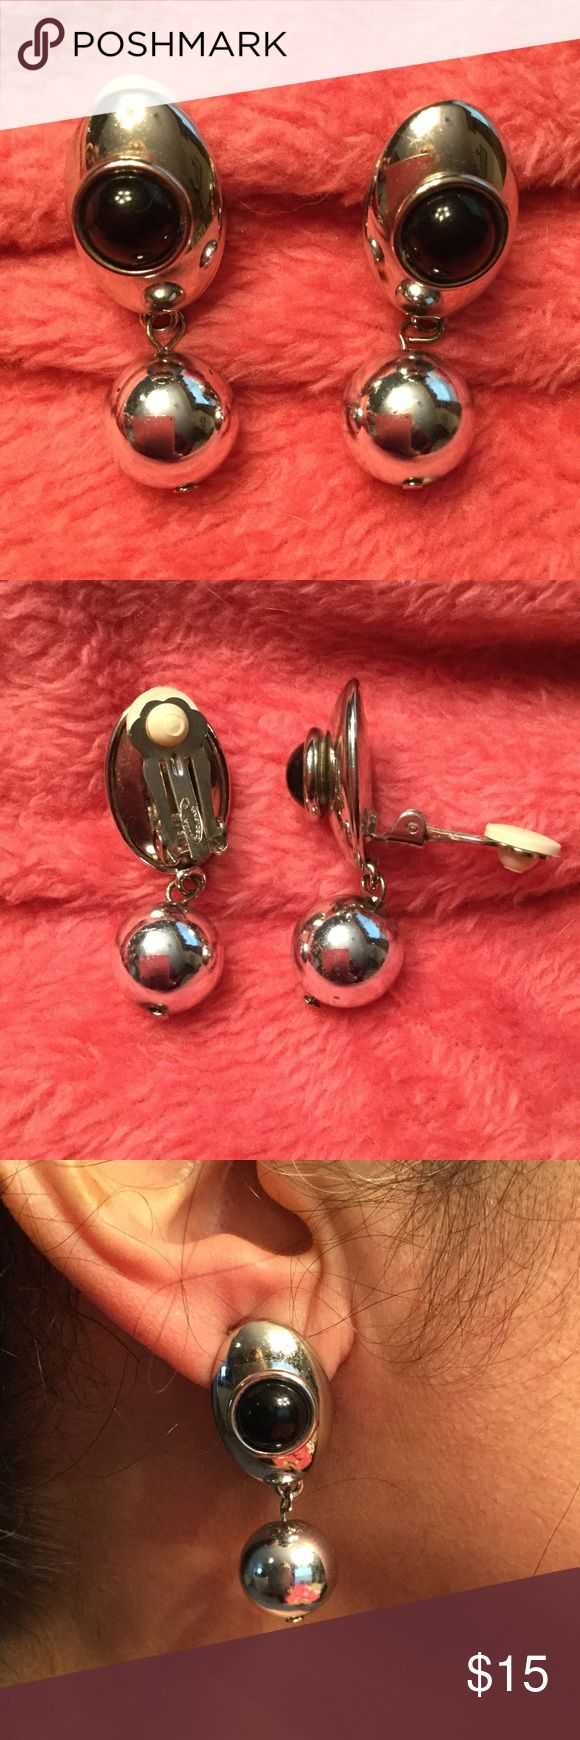 Silver and black dangle costume clip on earring Ellen Designs silver and black dangle style clip on earrings.  Smooth black faux onyx stone with silver ball. Overall size is 1-1/2 inches. Gently used and in excellent condition. Ellen Design Jewelry Jewelry Earrings